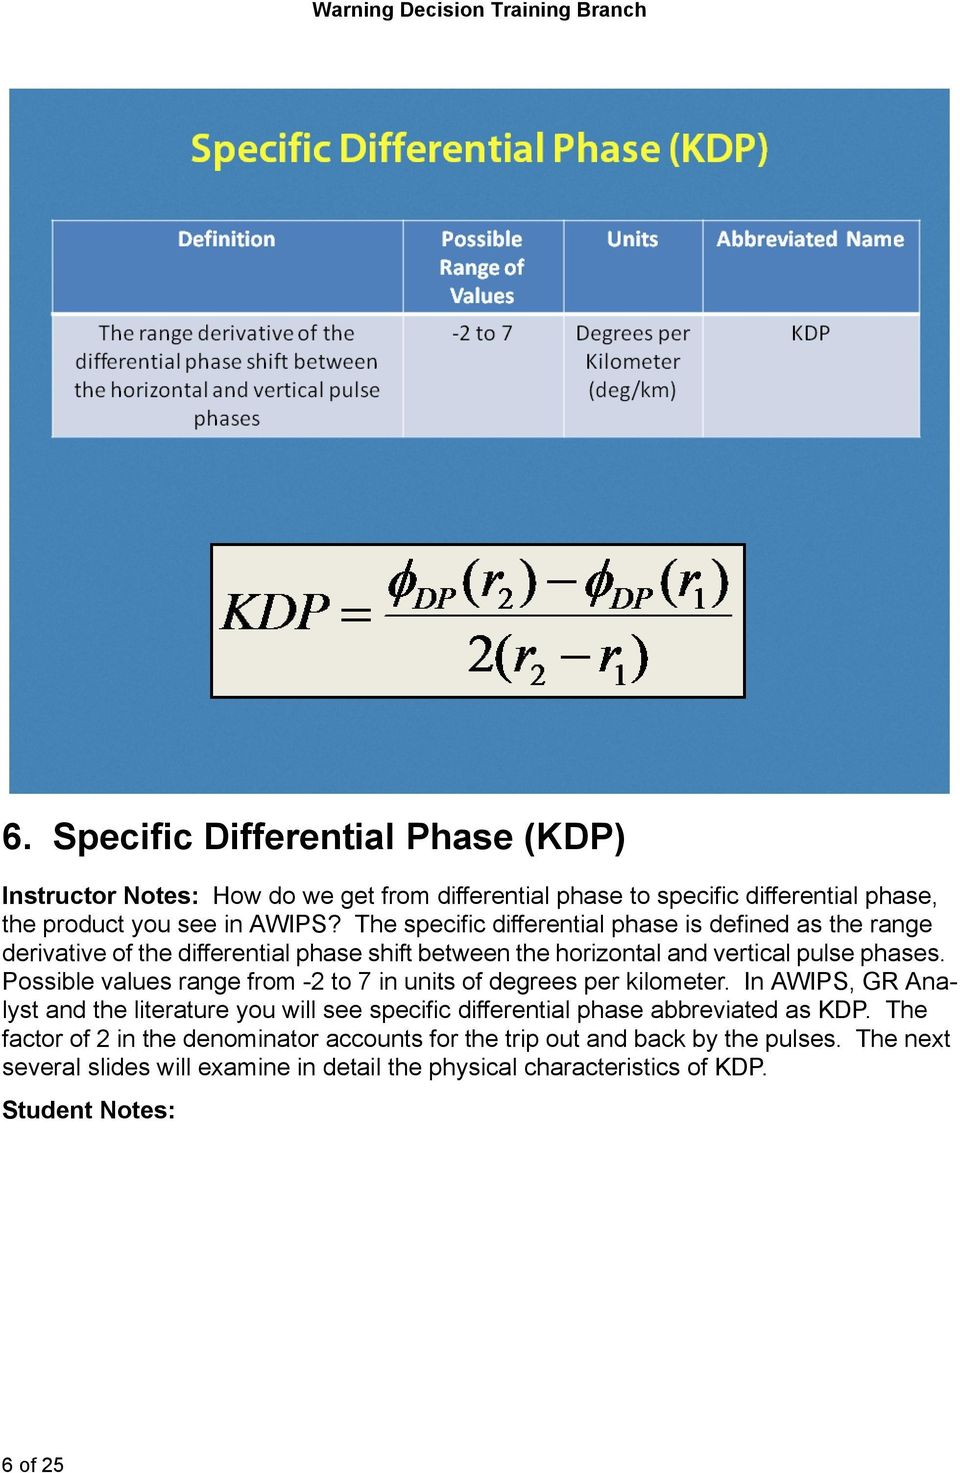 The specific differential phase is defined as the range derivative of the differential phase shift between the horizontal and vertical pulse phases.